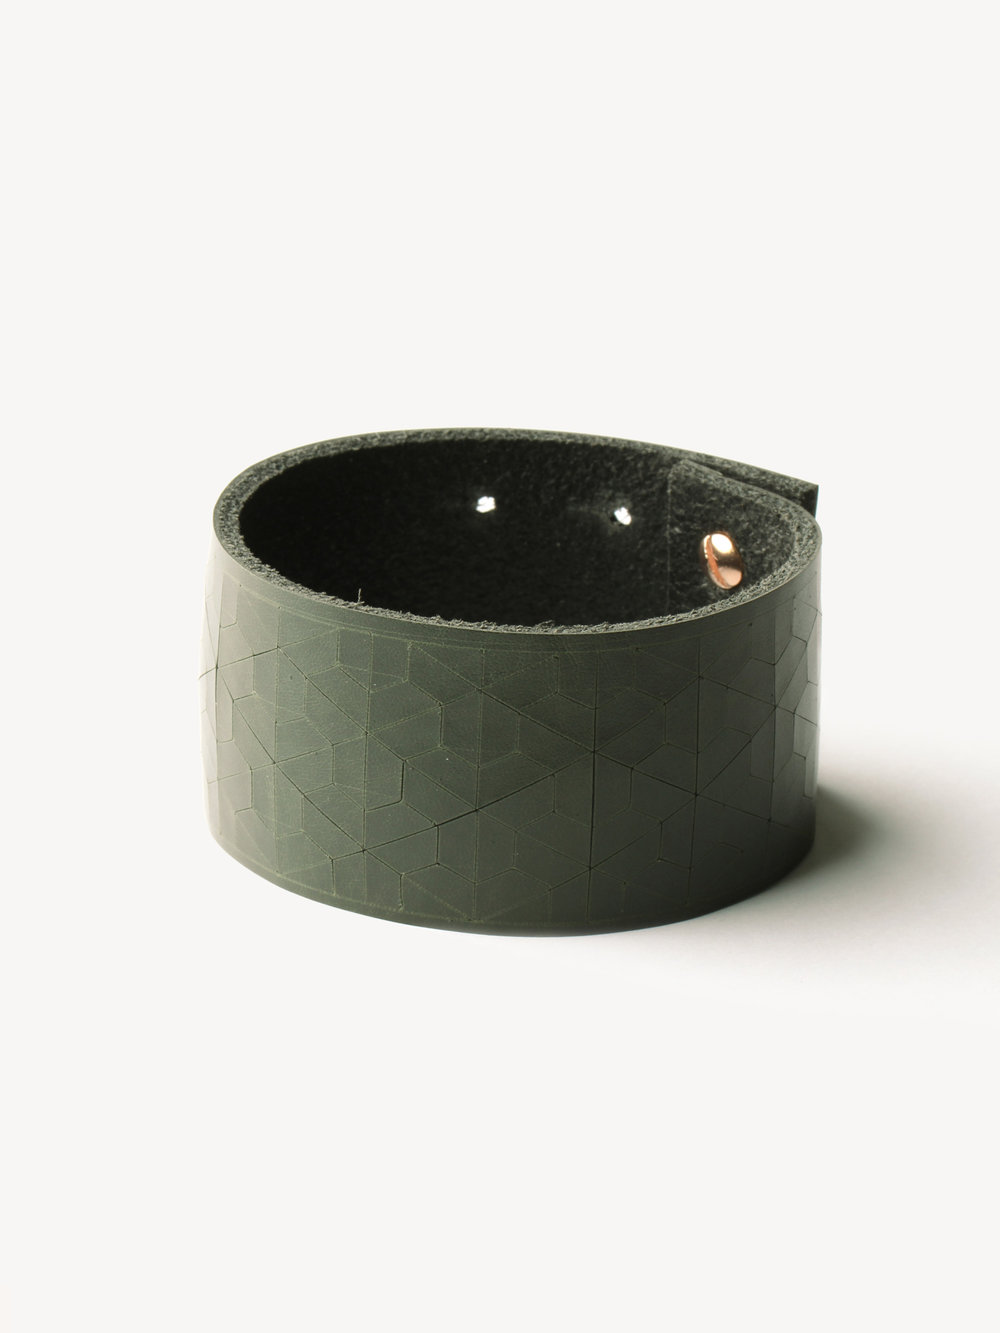 Leder-Armband, schmal in dunkelgrün  Leather bracelet, big in dark green